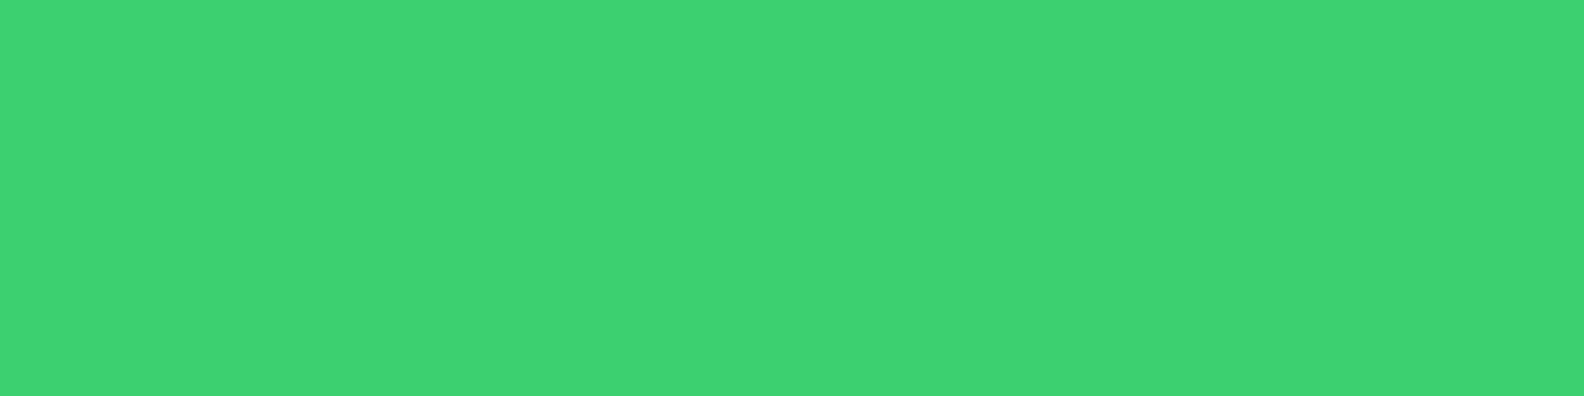 1584x396 UFO Green Solid Color Background